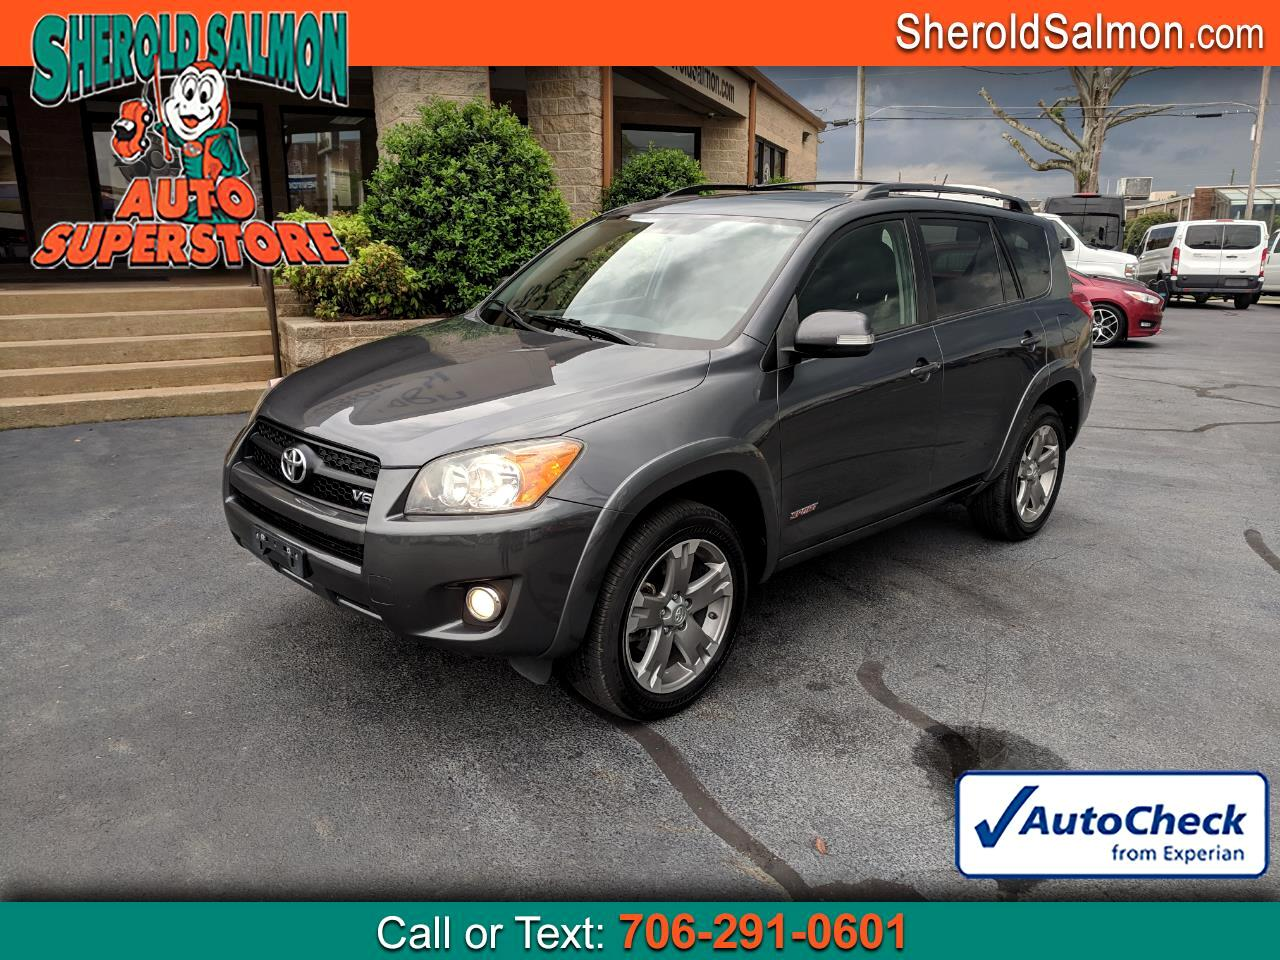 2010 Toyota RAV4 4WD 4dr V6 5-Spd AT Sport (Natl)